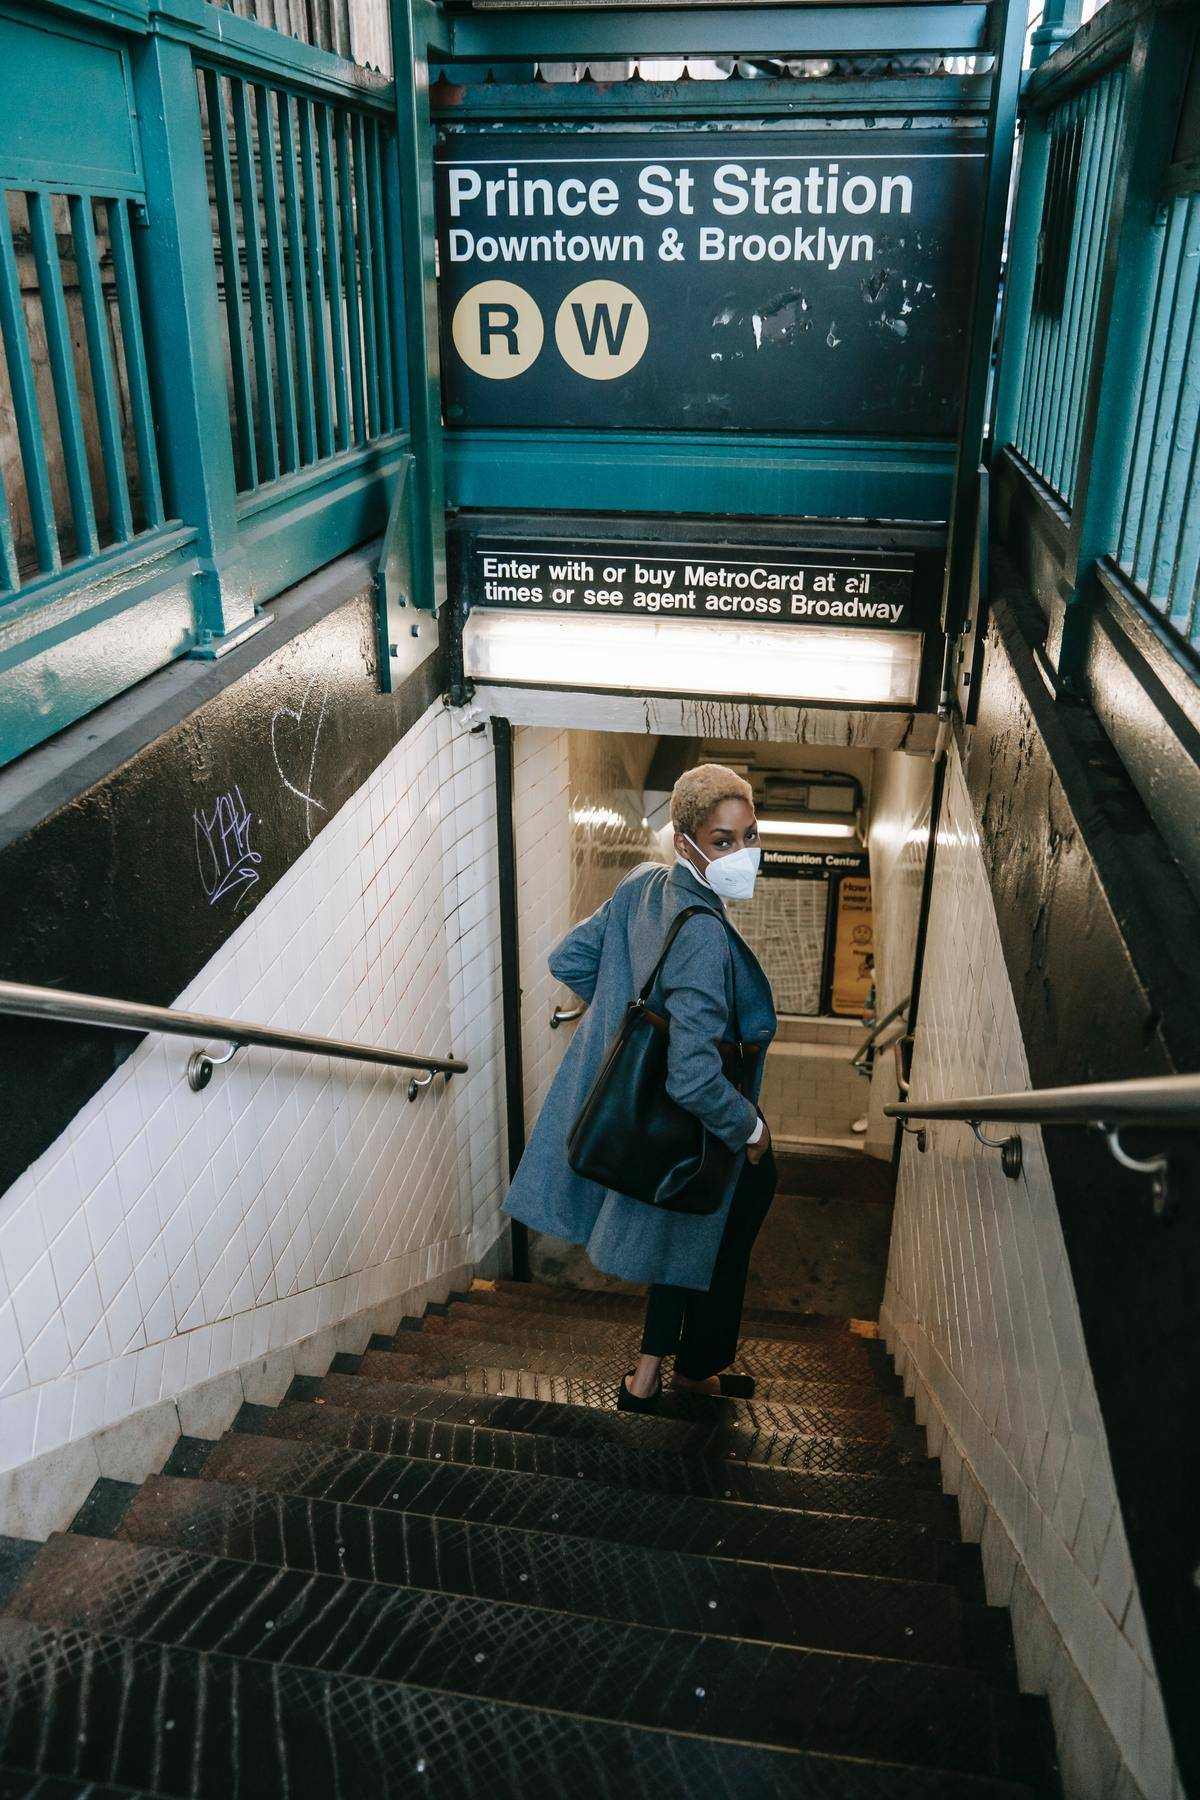 A woman walks down the stairs onto a subway platform and looks over her shoulder toward the camera